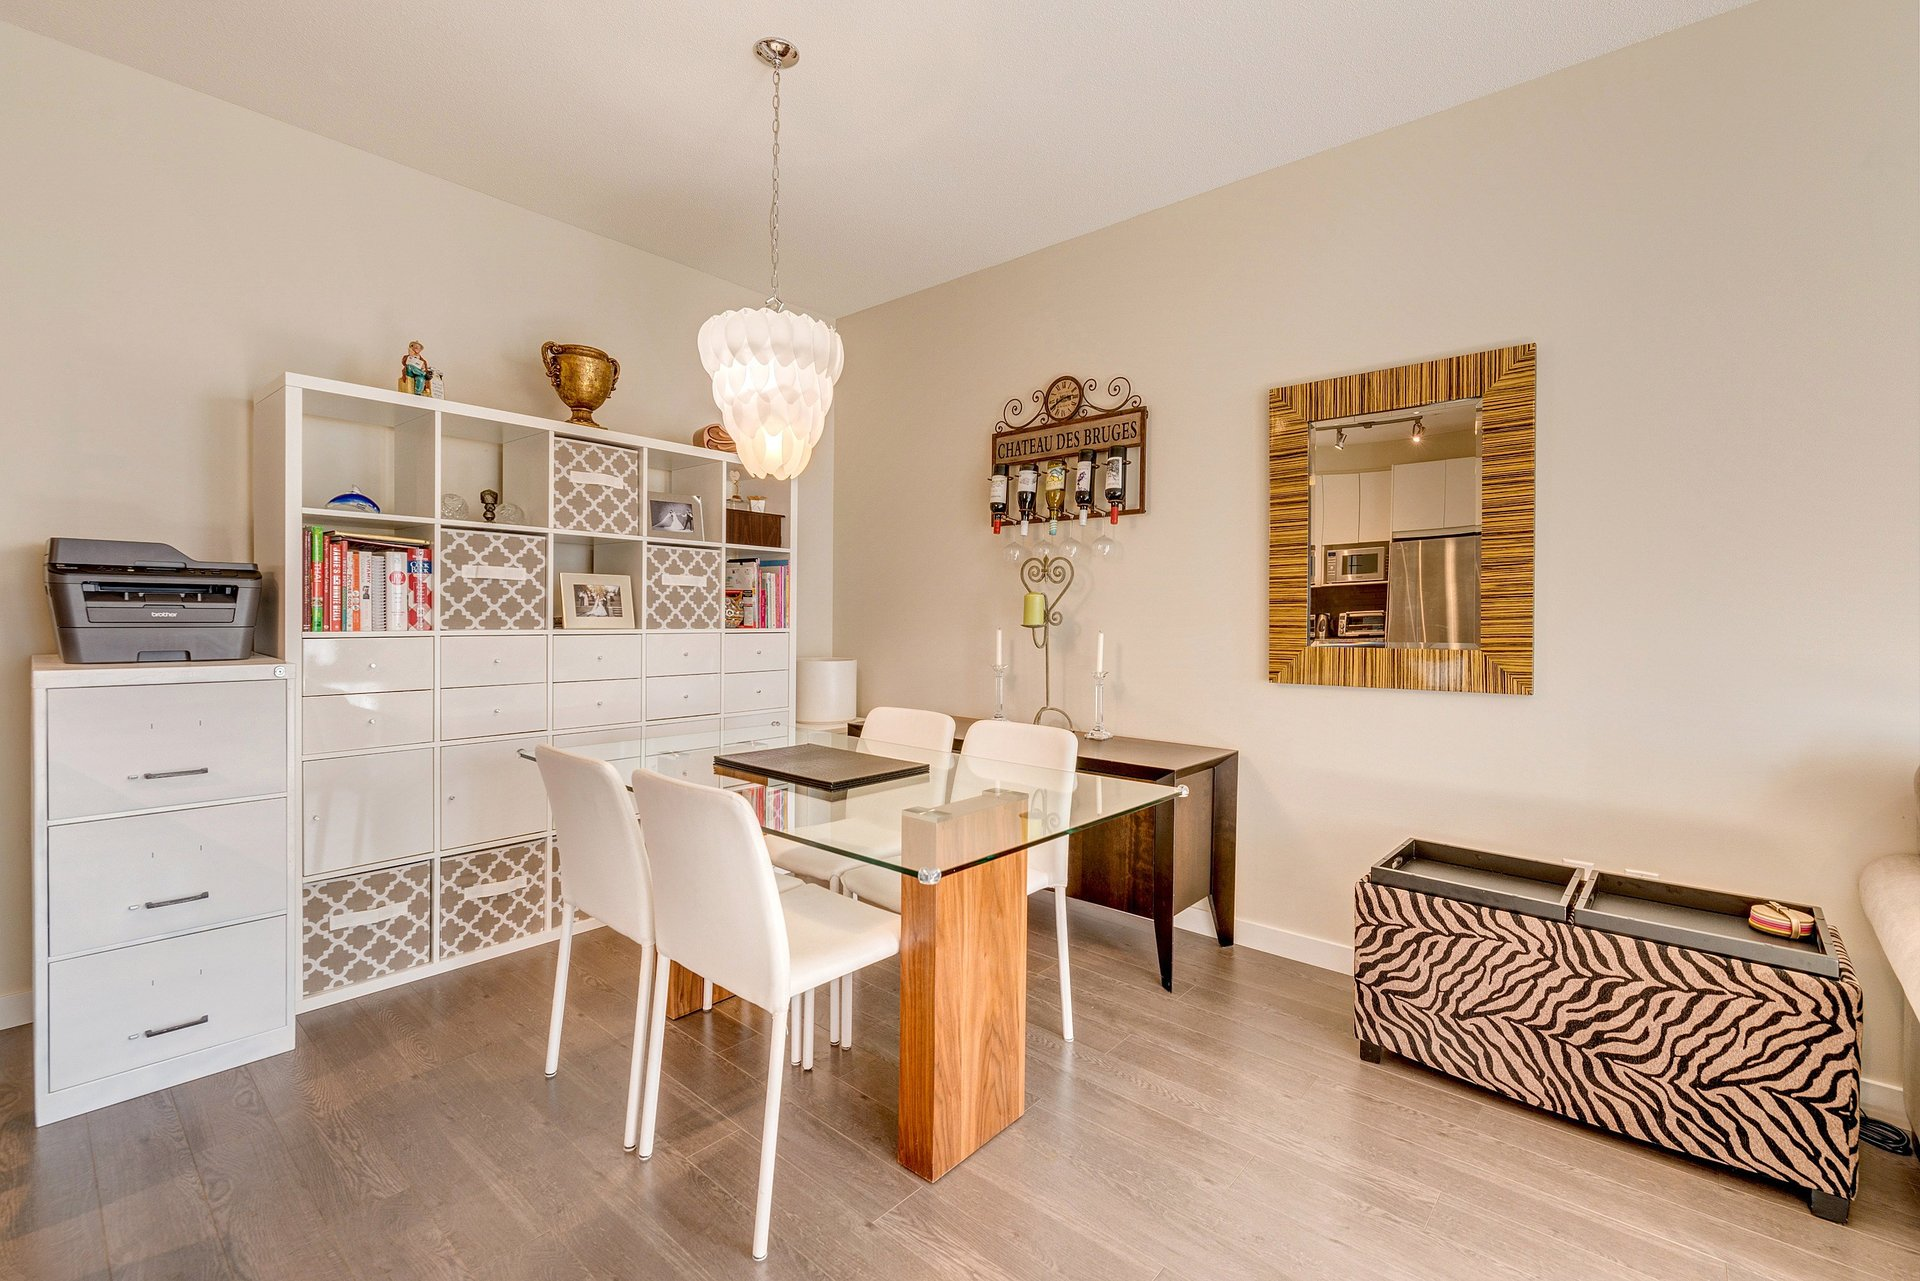 Kitchen & Dining Room at 337 - 9388 Mckim Way, West Cambie, Richmond